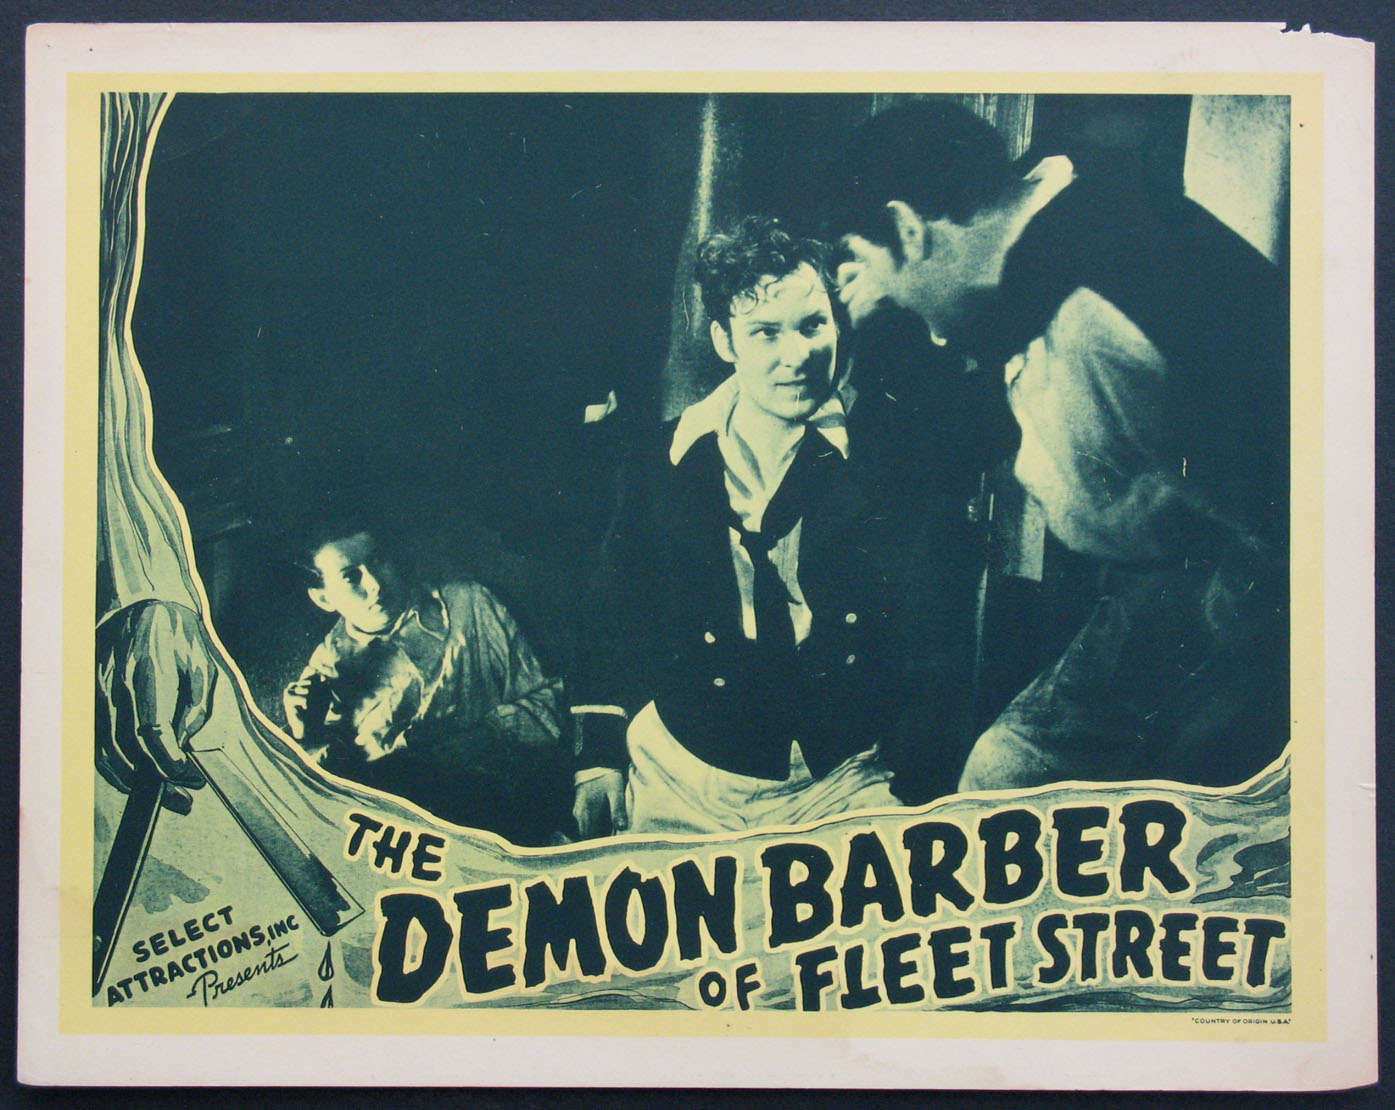 DEMON BARBER OF FLEET STREET @ FilmPosters.com